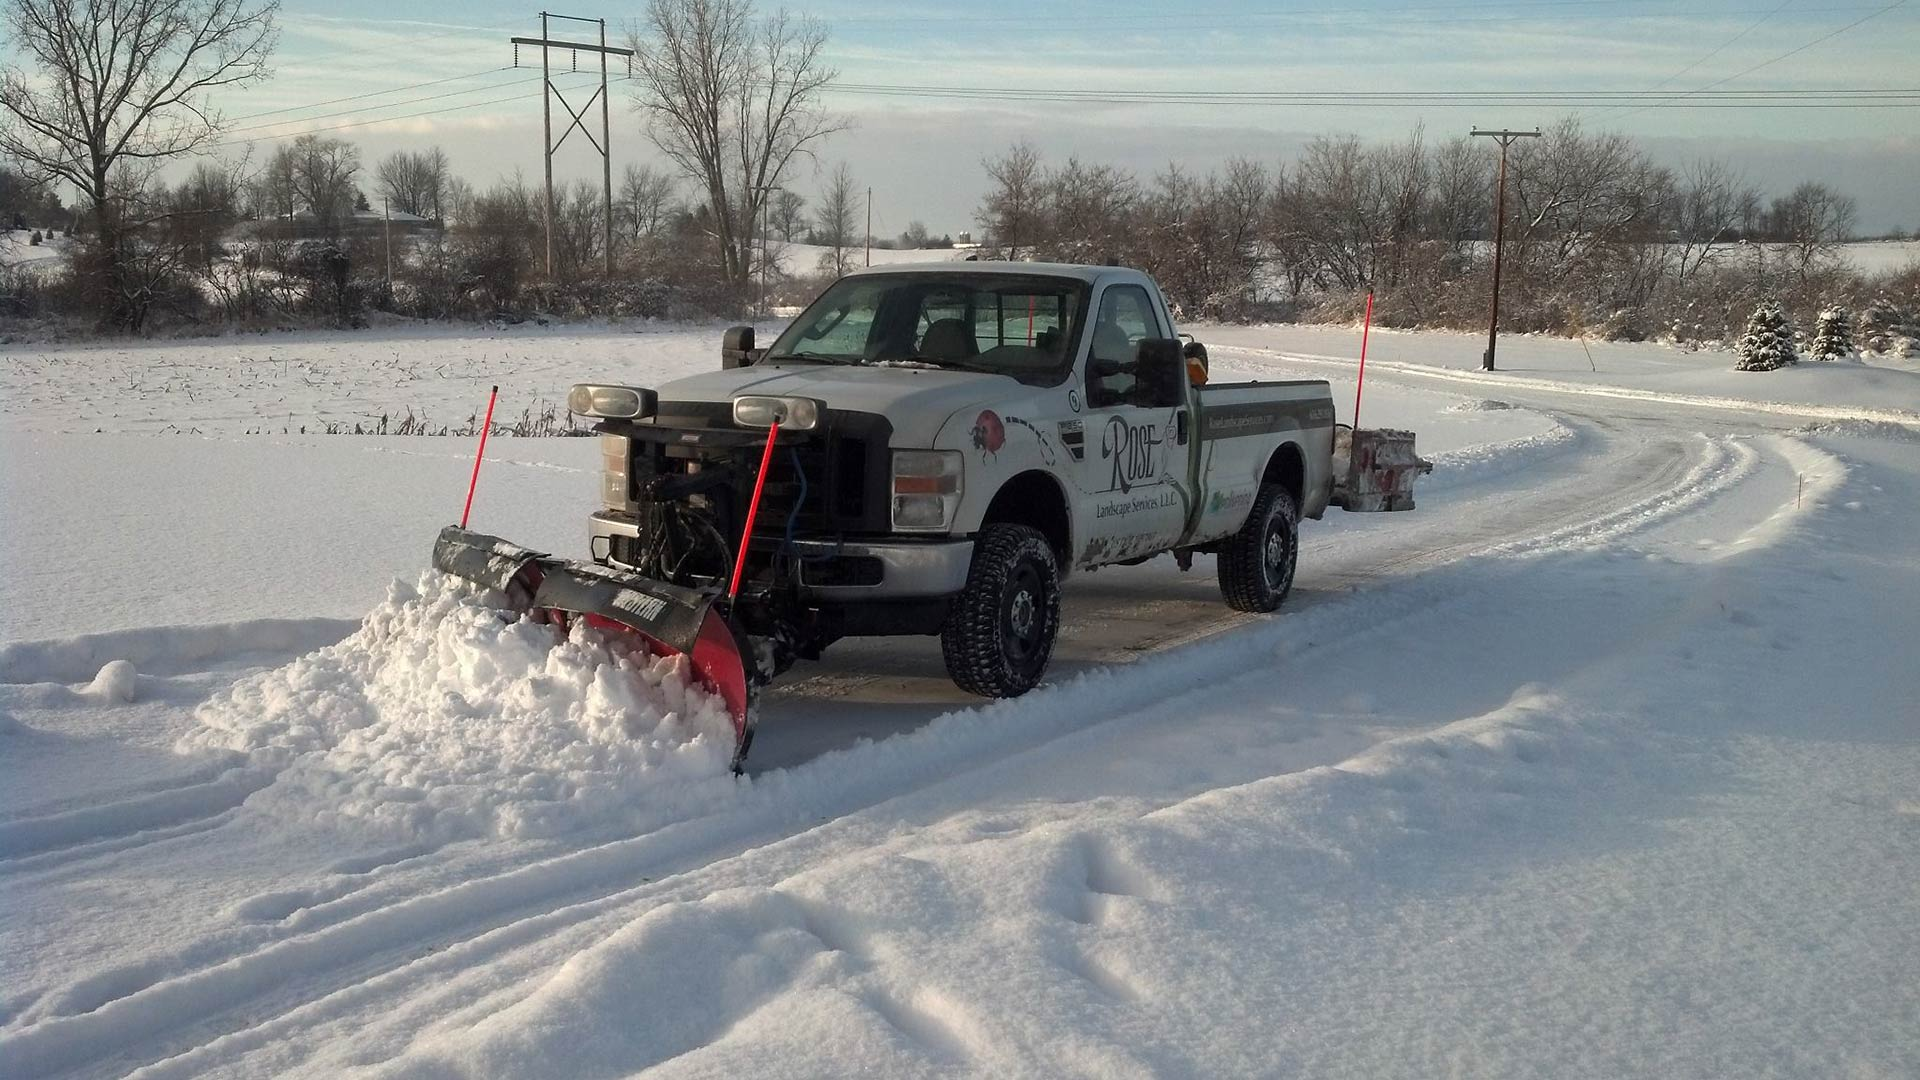 Rose Landscaping company truck plowing snow in Grand Rapids, MI.